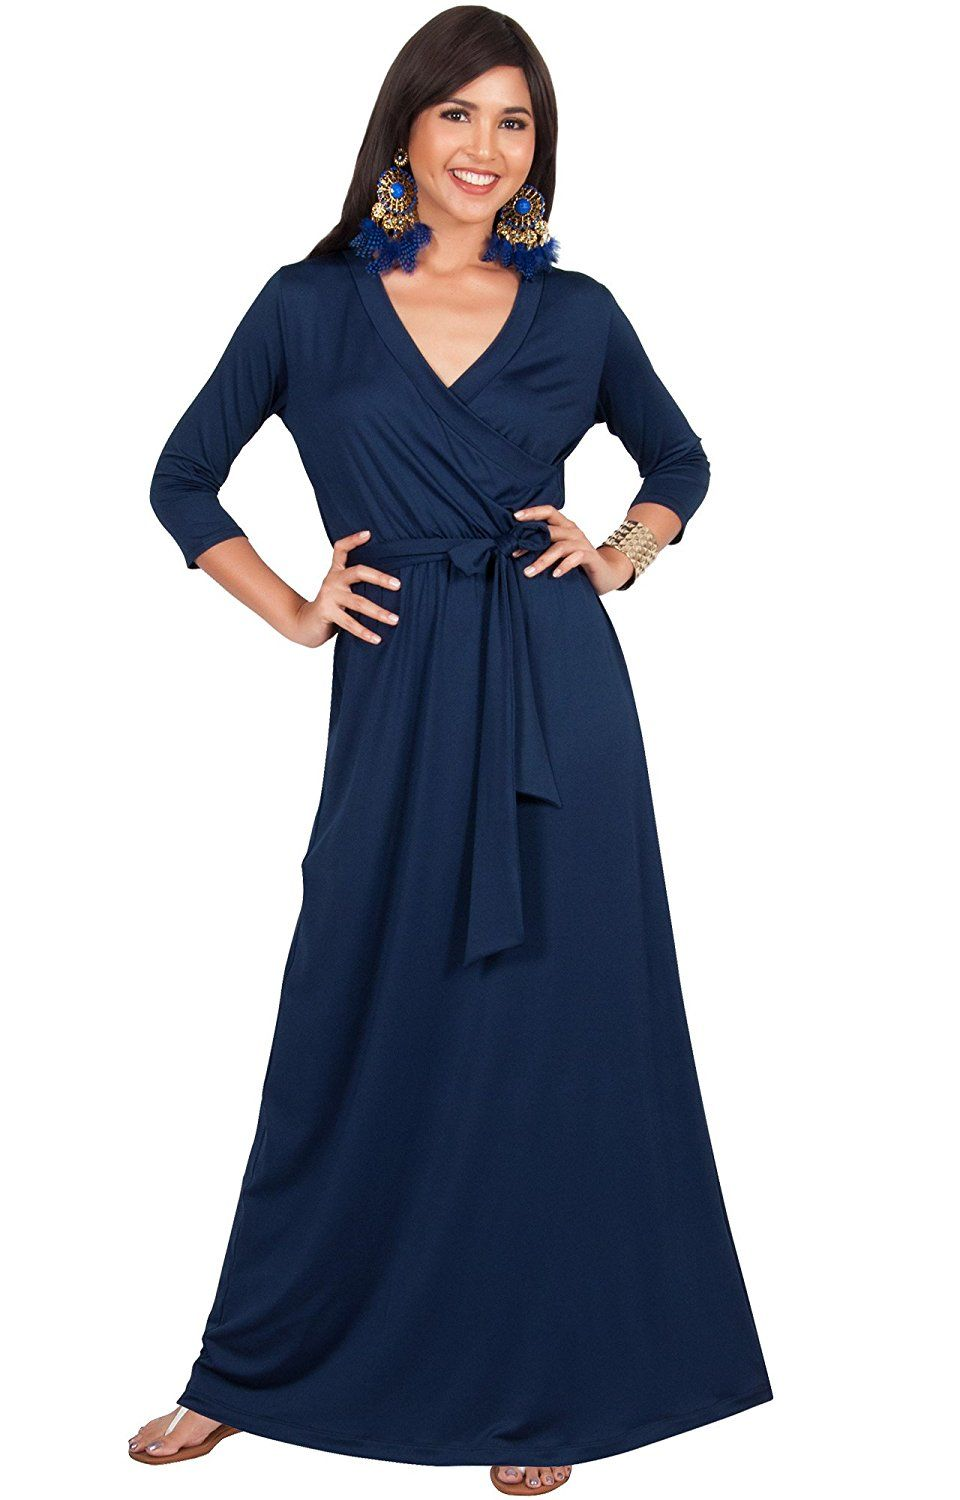 Cheap maxi dresses for weddings  KOH KOH Womens Long Sleeve Casual Cocktail Flowy VNeck Gown Maxi